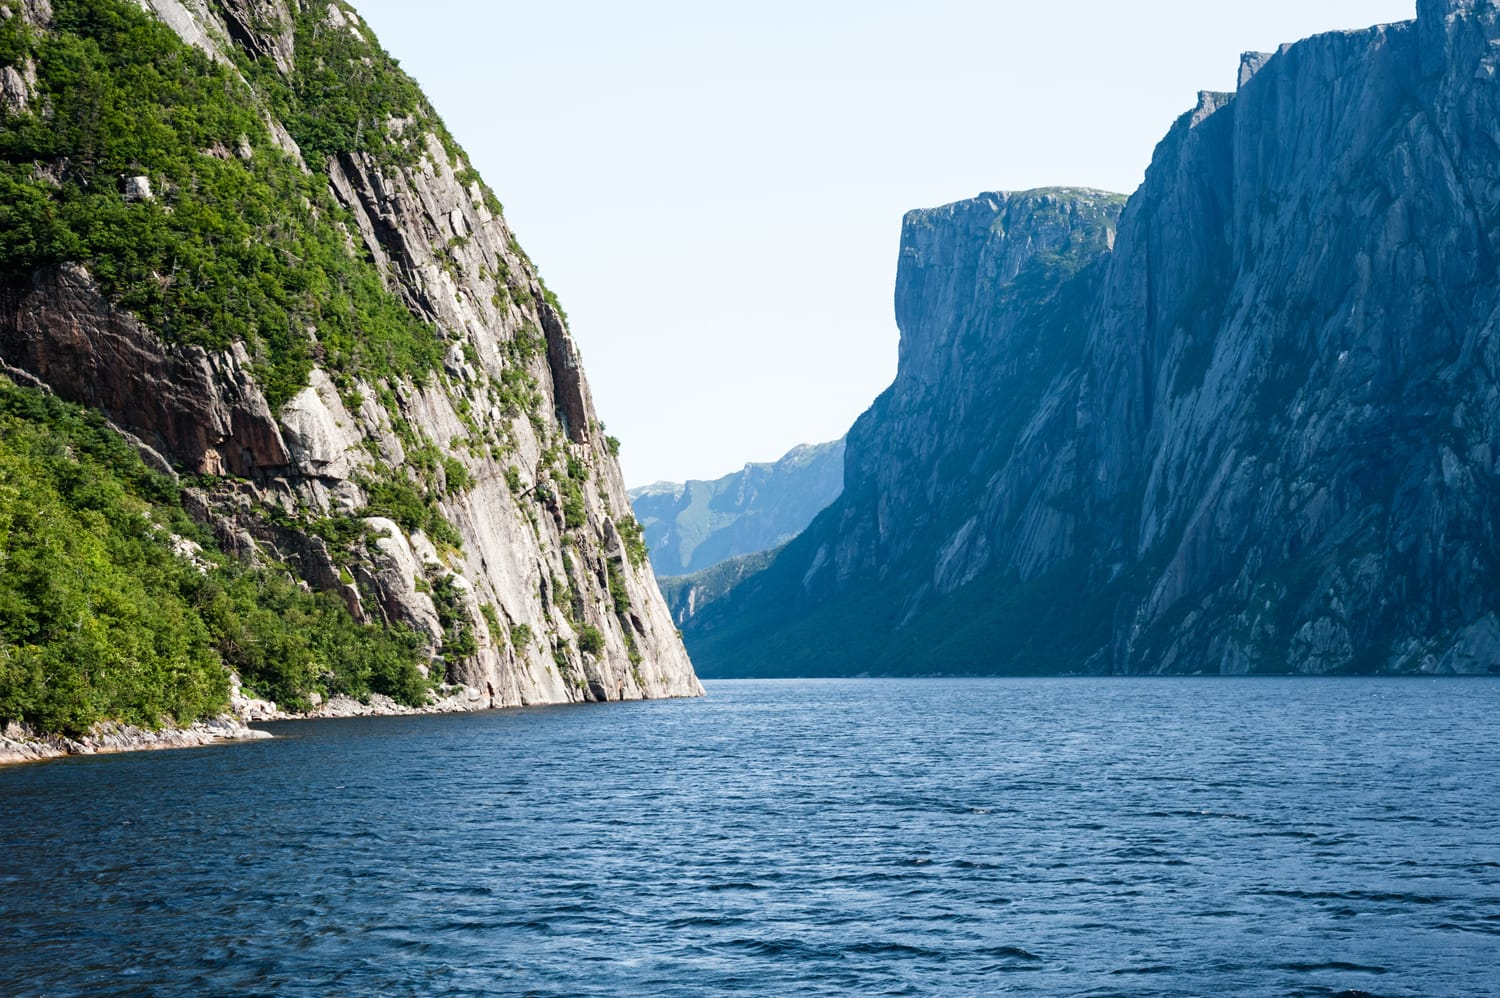 Inland fjord between large steep cliffs with some green vegetation on rock face, at Western Brook Pond, Gros Morne National Park, Newfoundland, Canada.